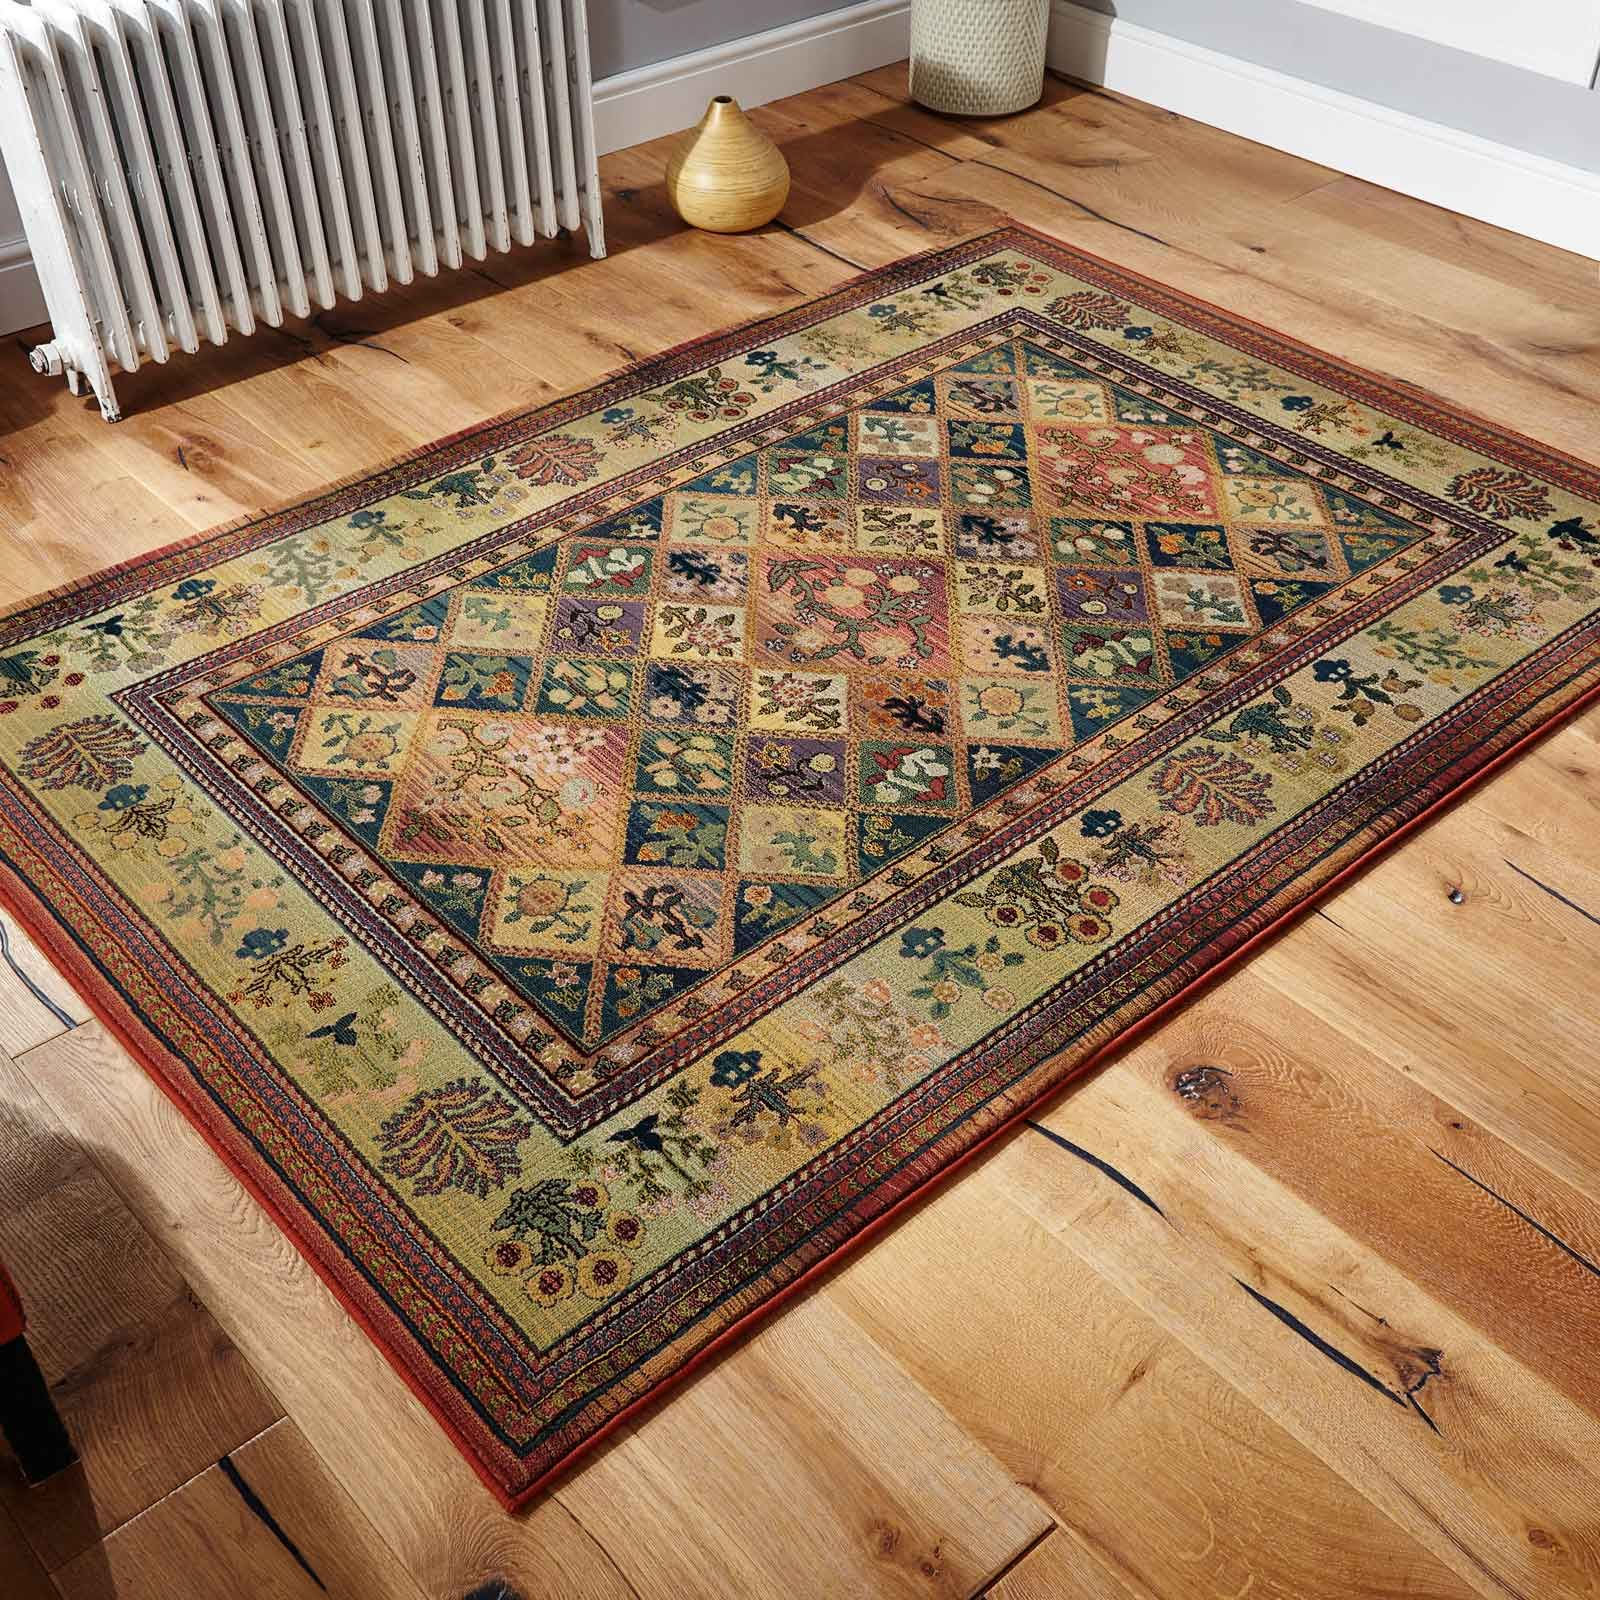 rug get vintage larger products click image antique on first to gabbeh rugs picture